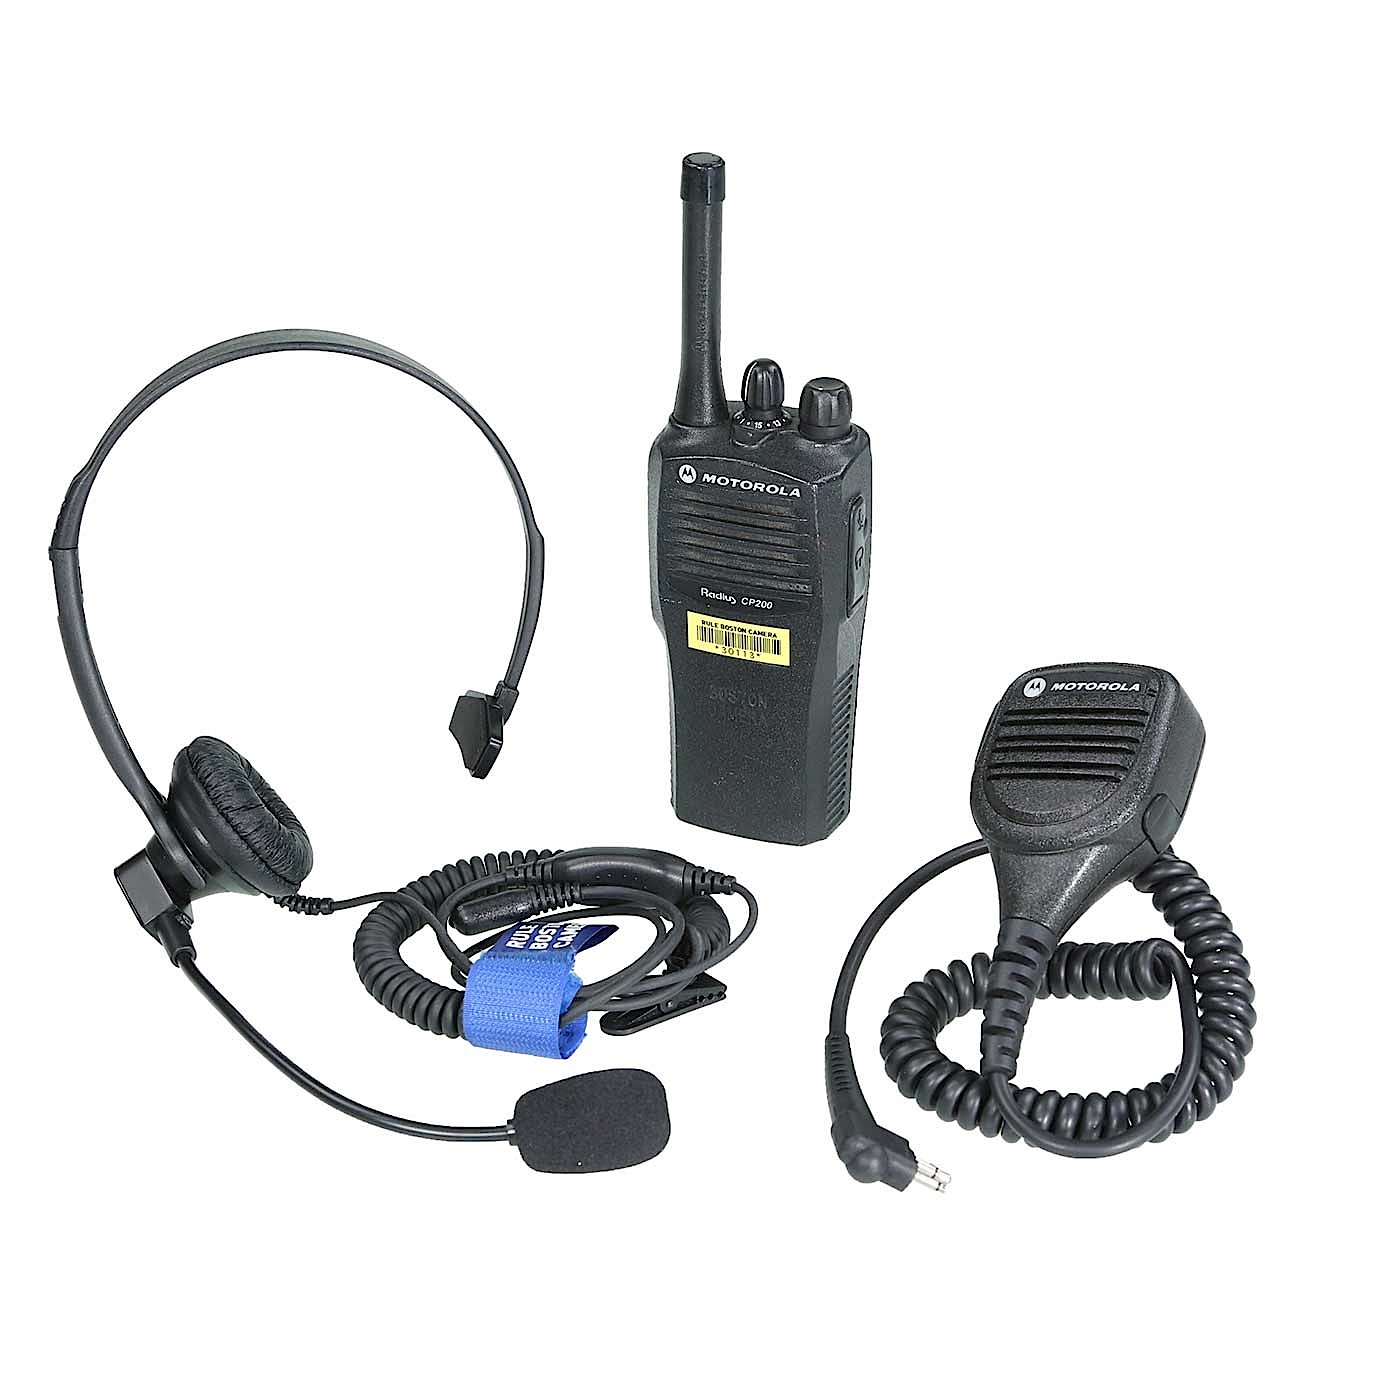 Motorola Radius Cp200 Walkie Talkie Rule Camera